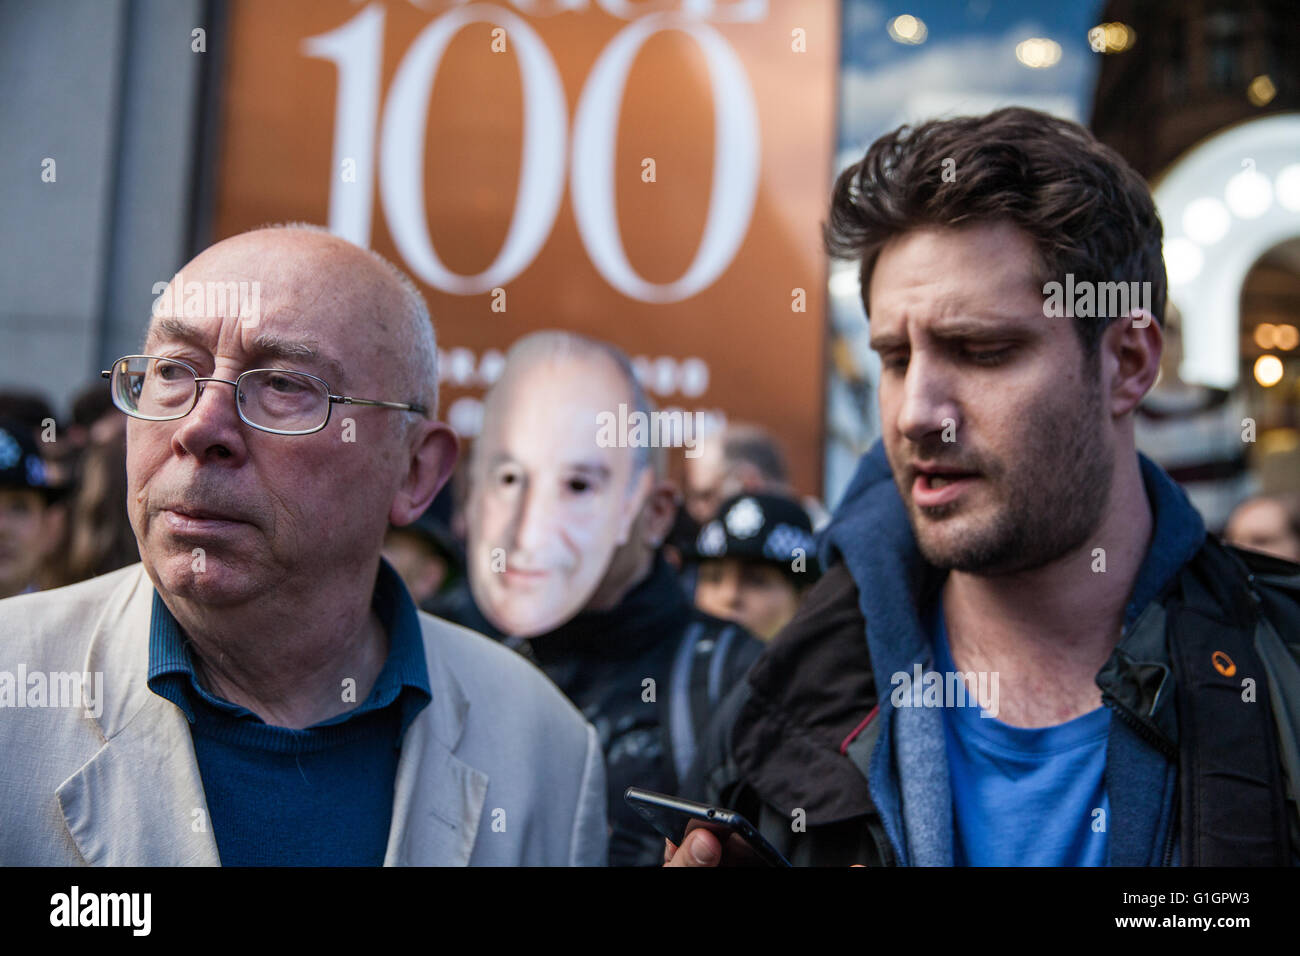 London, UK. 14th May, 2016. Ian Bone (l) of Class War and Petros Elia, General Secretary of the United Voices of - Stock Image